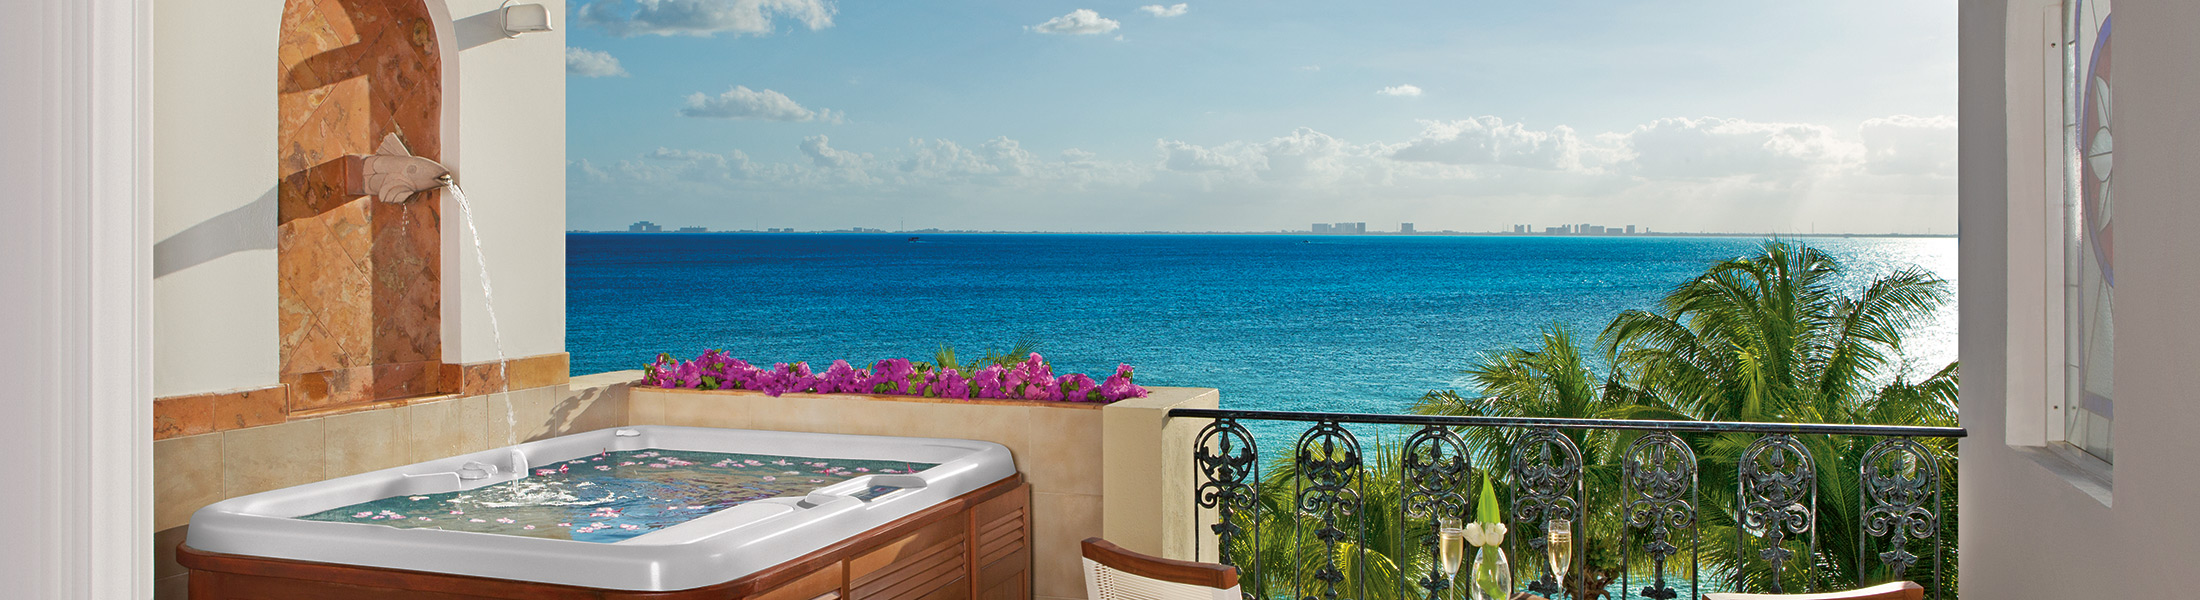 Jucuzzi on a balcony at Zoetry Villa Rolandi Isla Mujeres